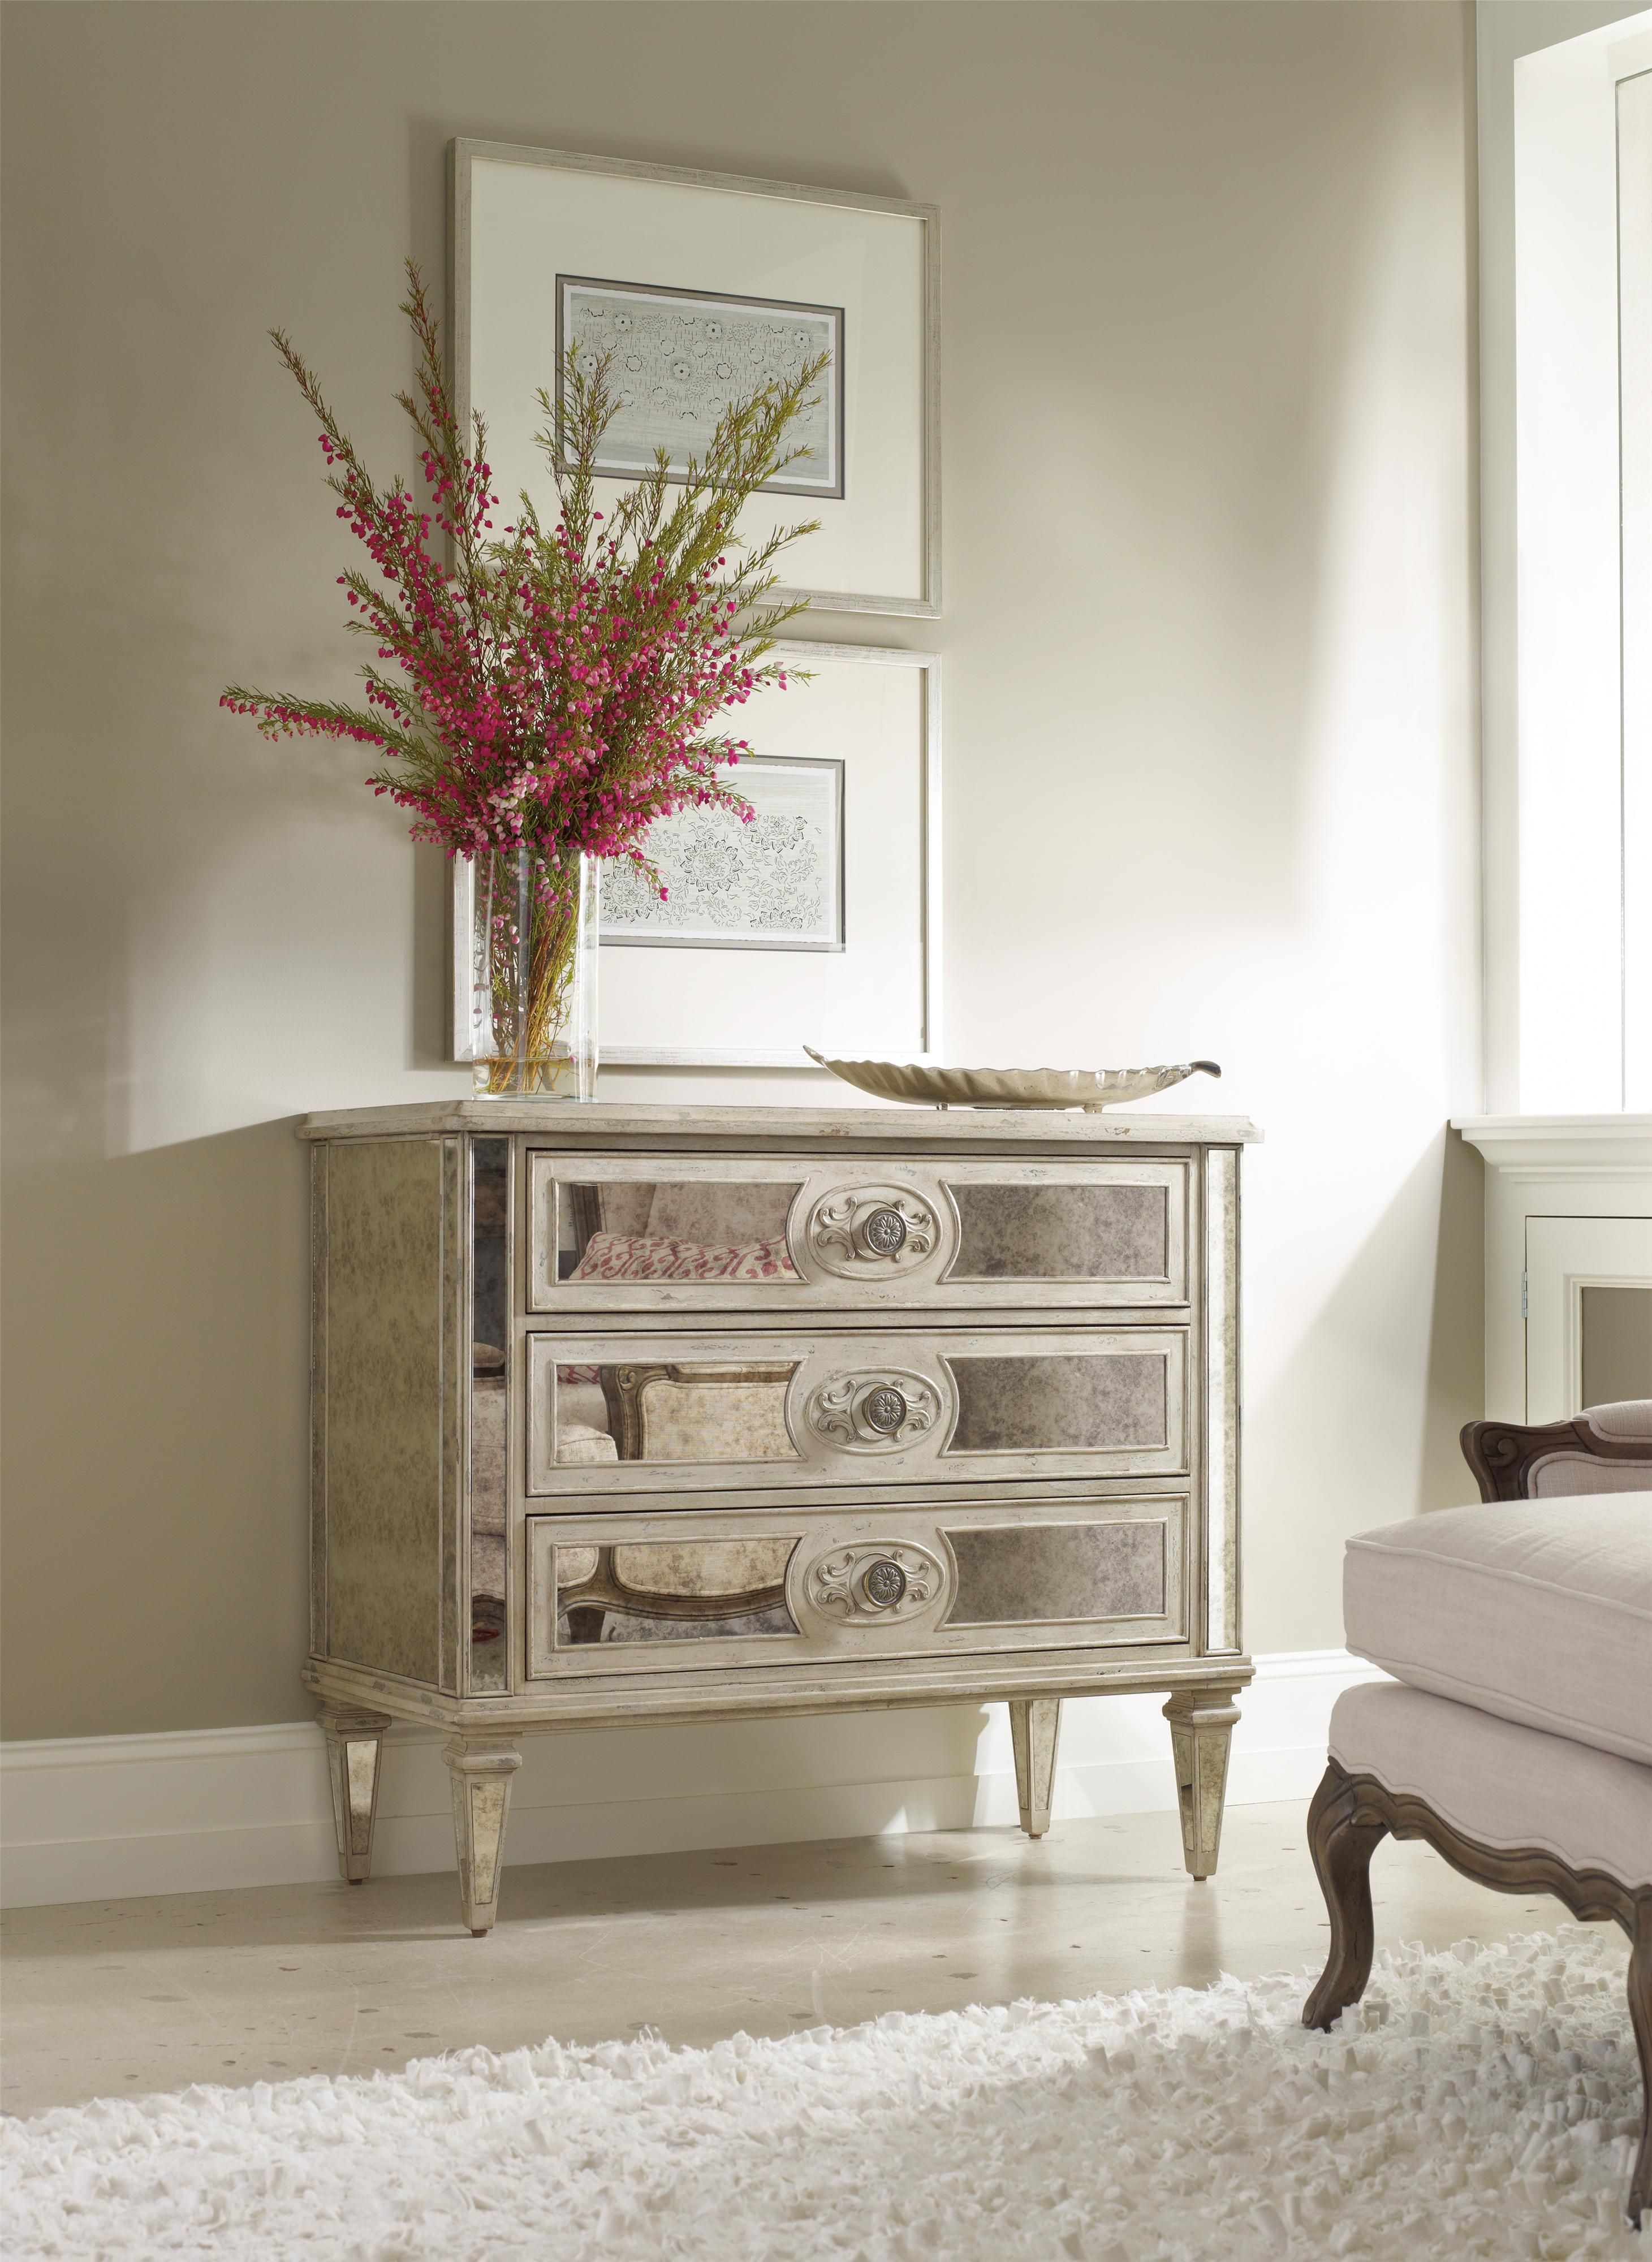 Living Room Antique Furniture Living Room Accents 3 Drawer Antique Mirrored Chest By Hamilton